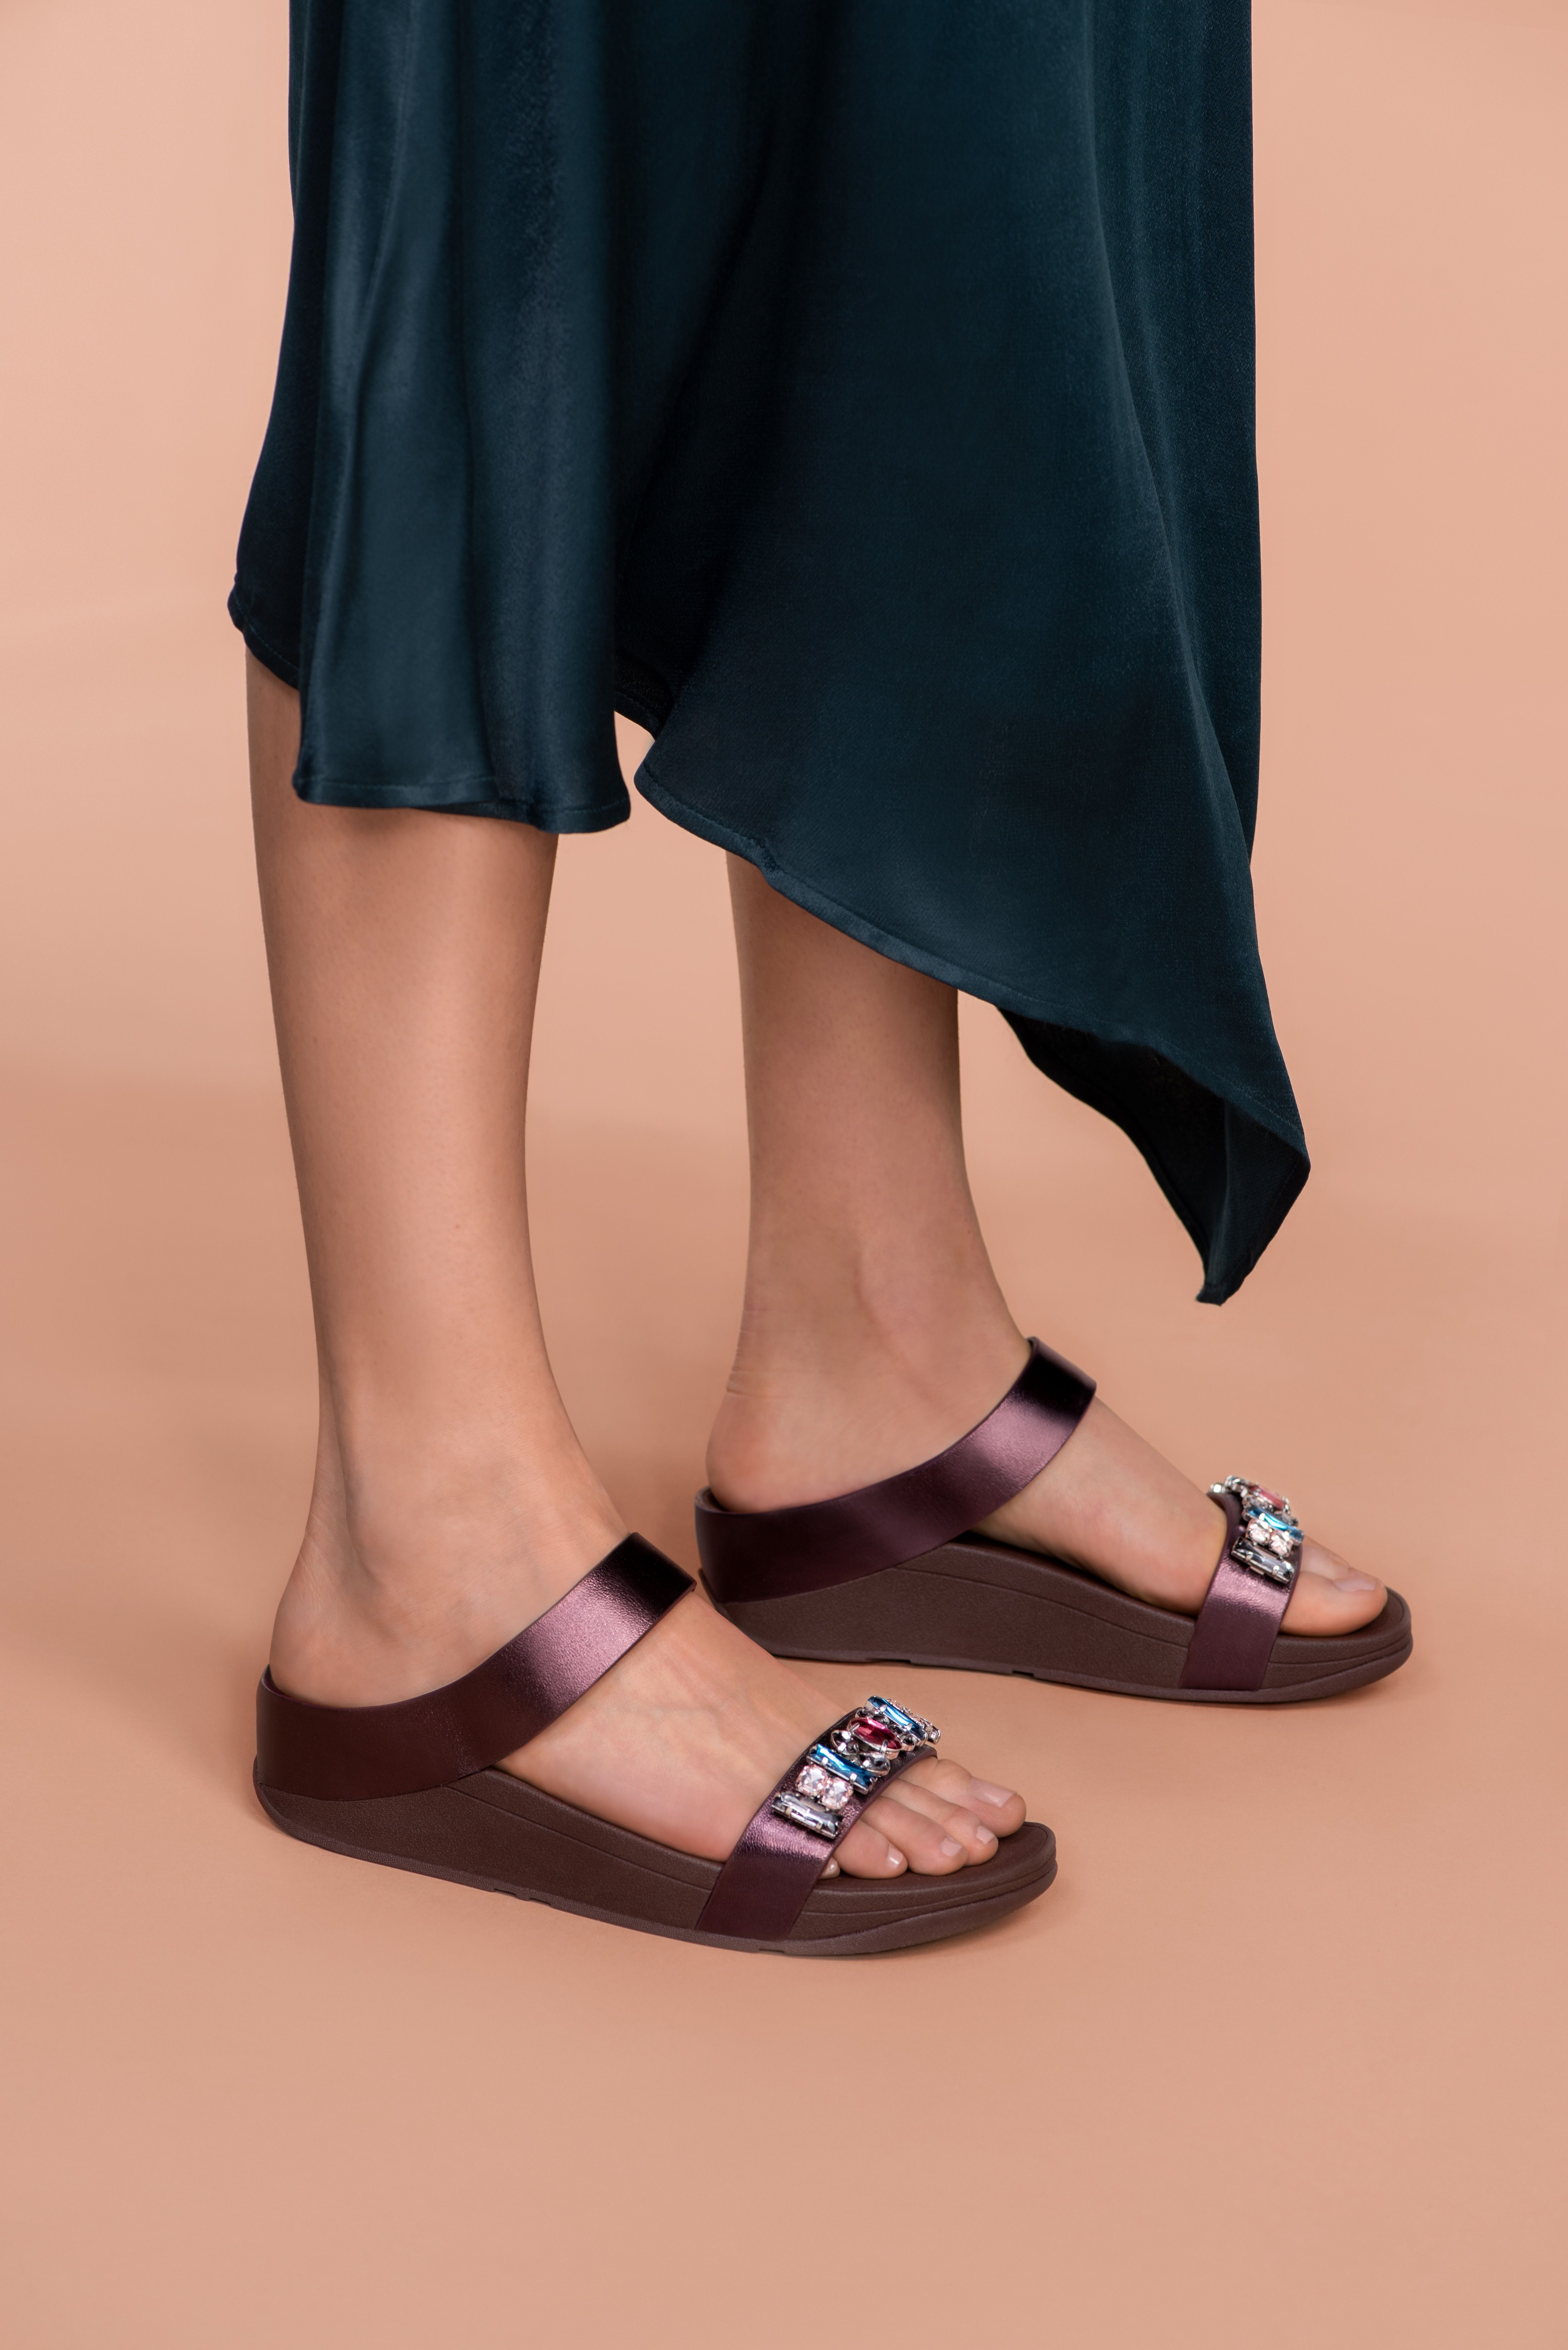 07c5e0c6d AW18 Collection | FINO Galaxy Jewel Leather Slides Back Strap, Winter  Collection, Strap Sandals